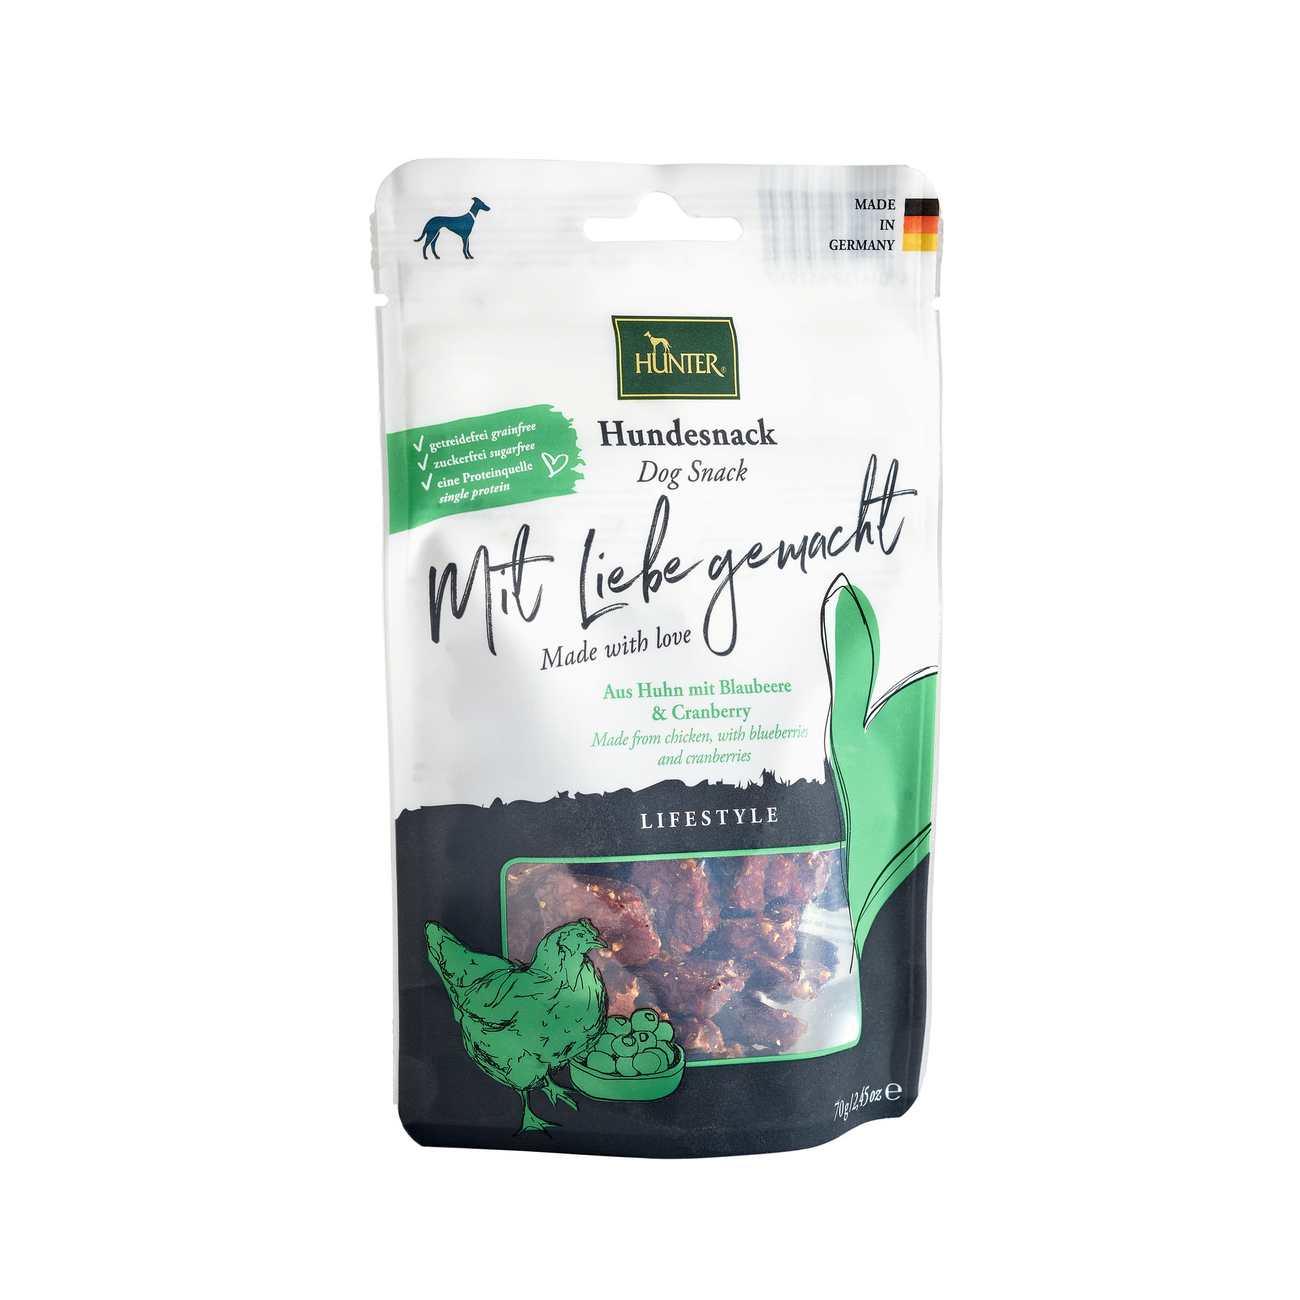 Hunter Hundesnack Lifestyle 65795, Bild 7